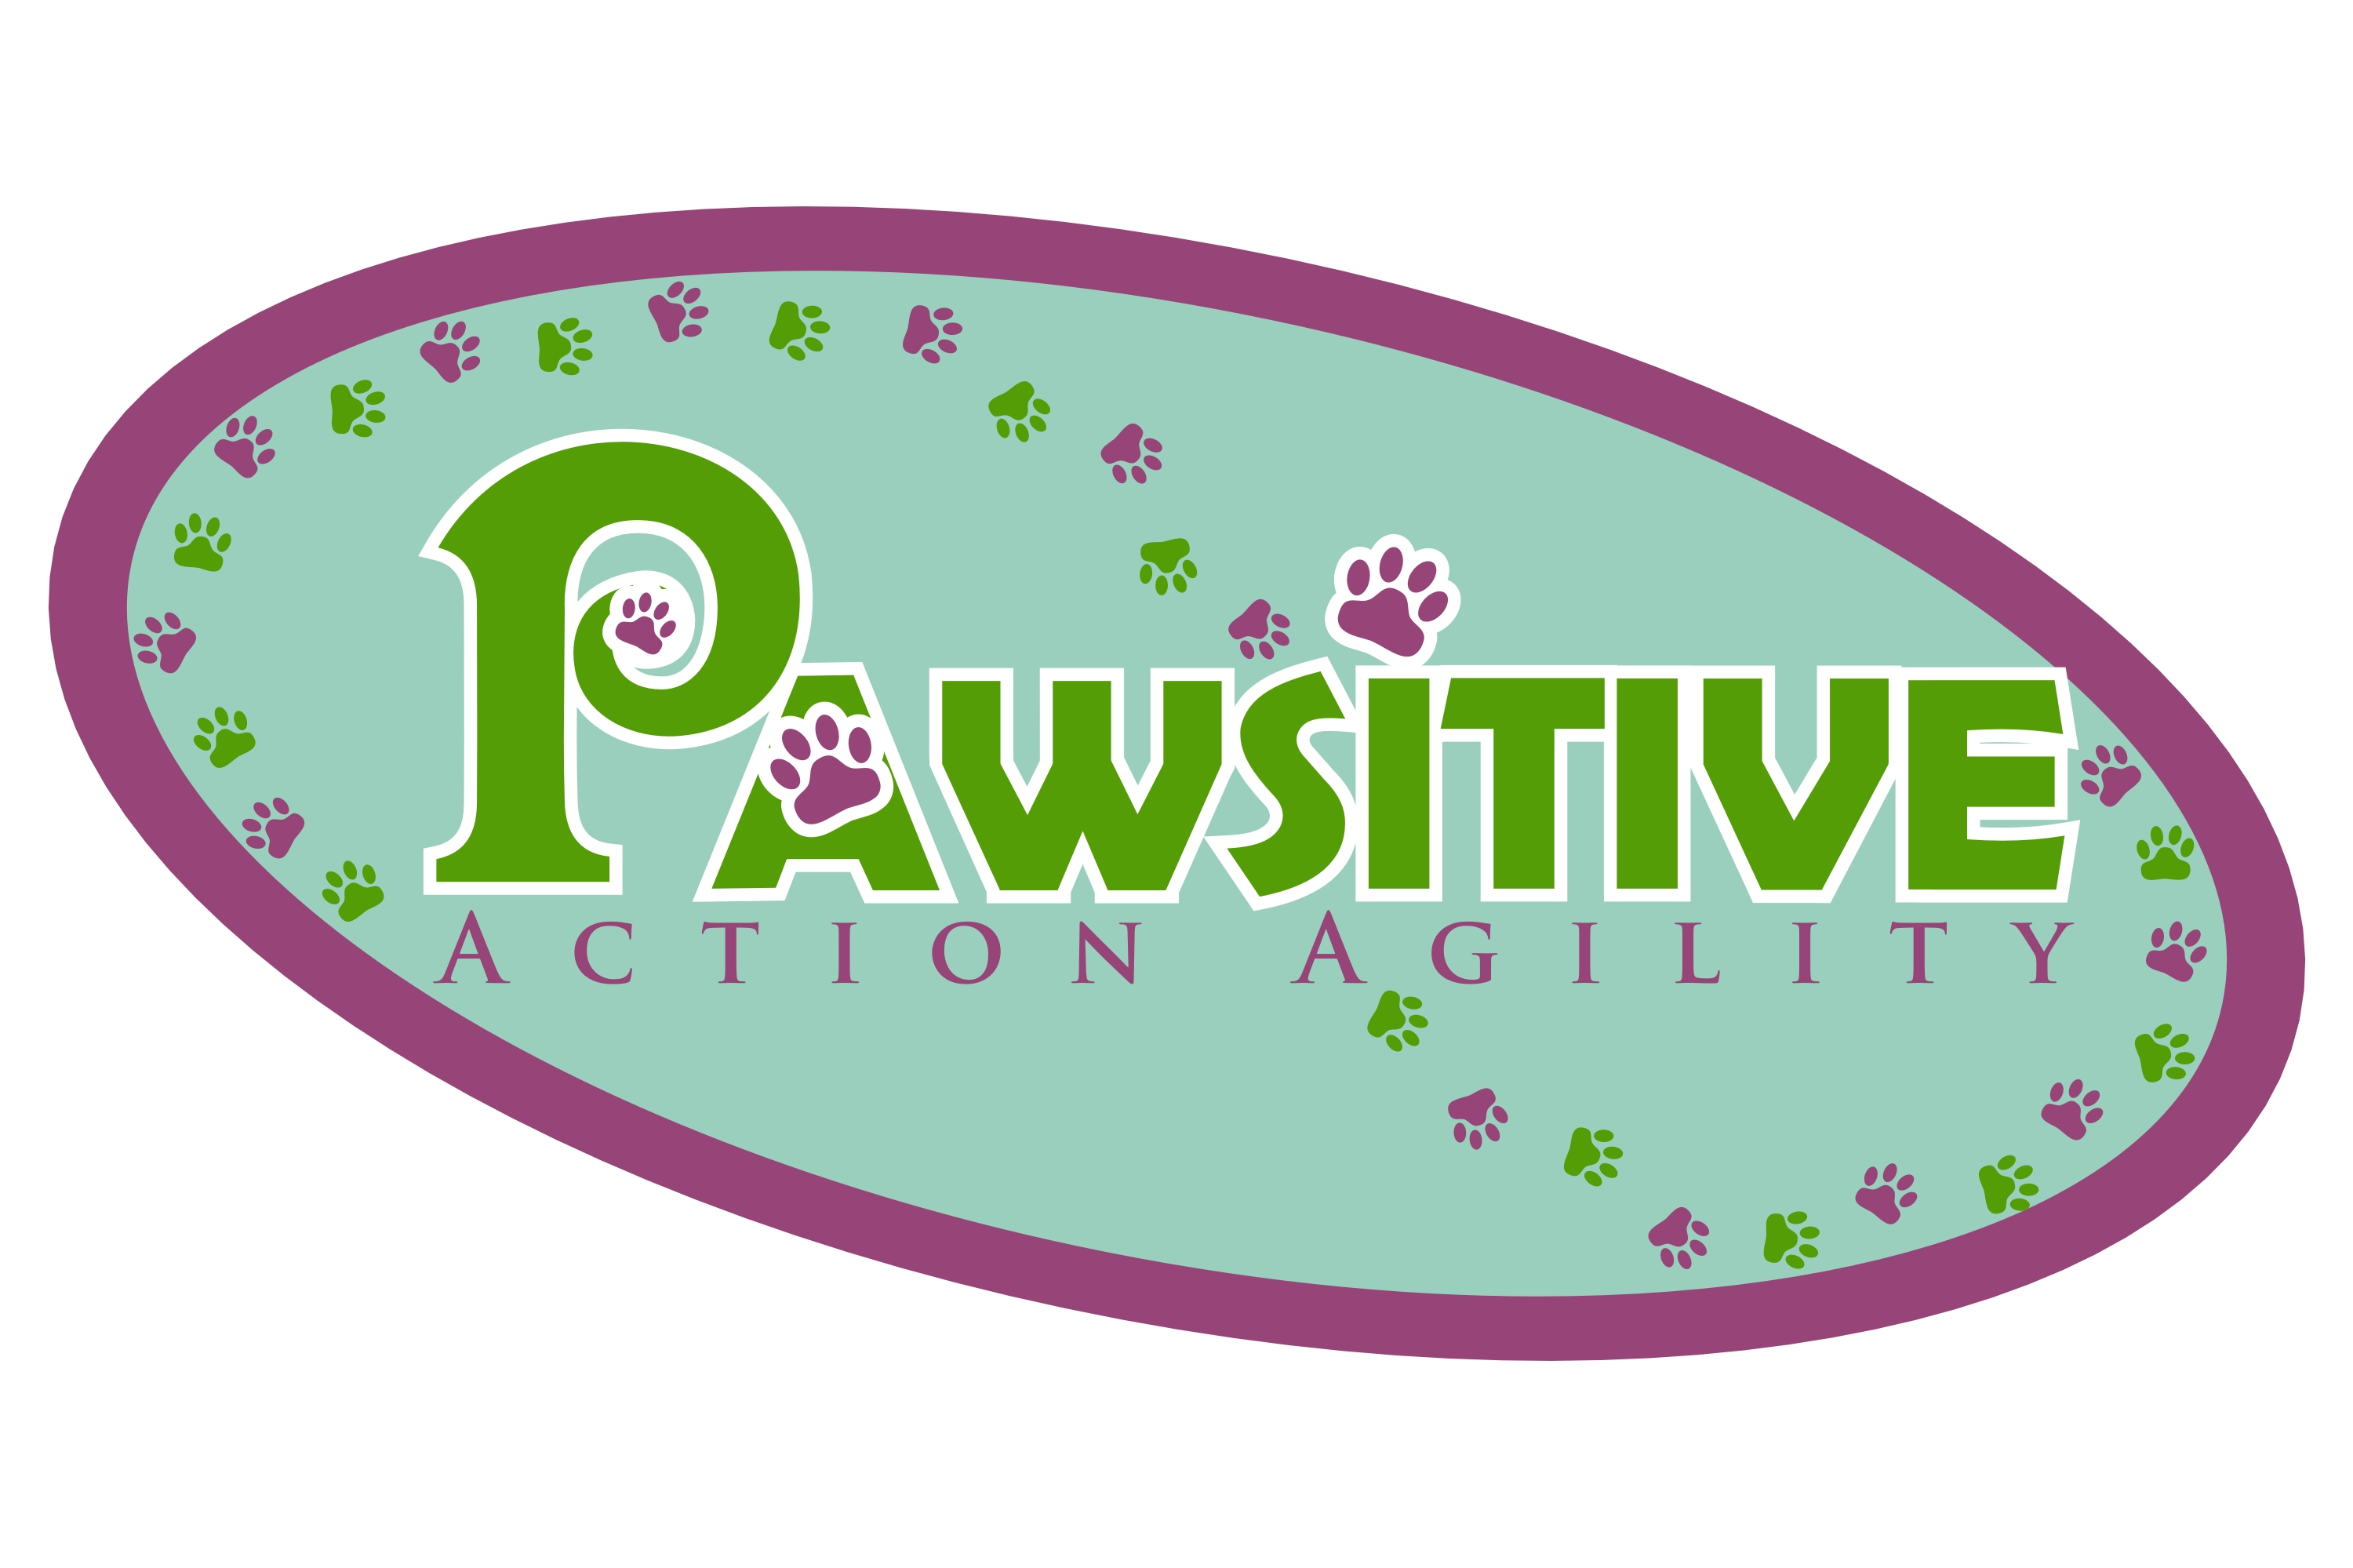 Pawsitive Action Agility